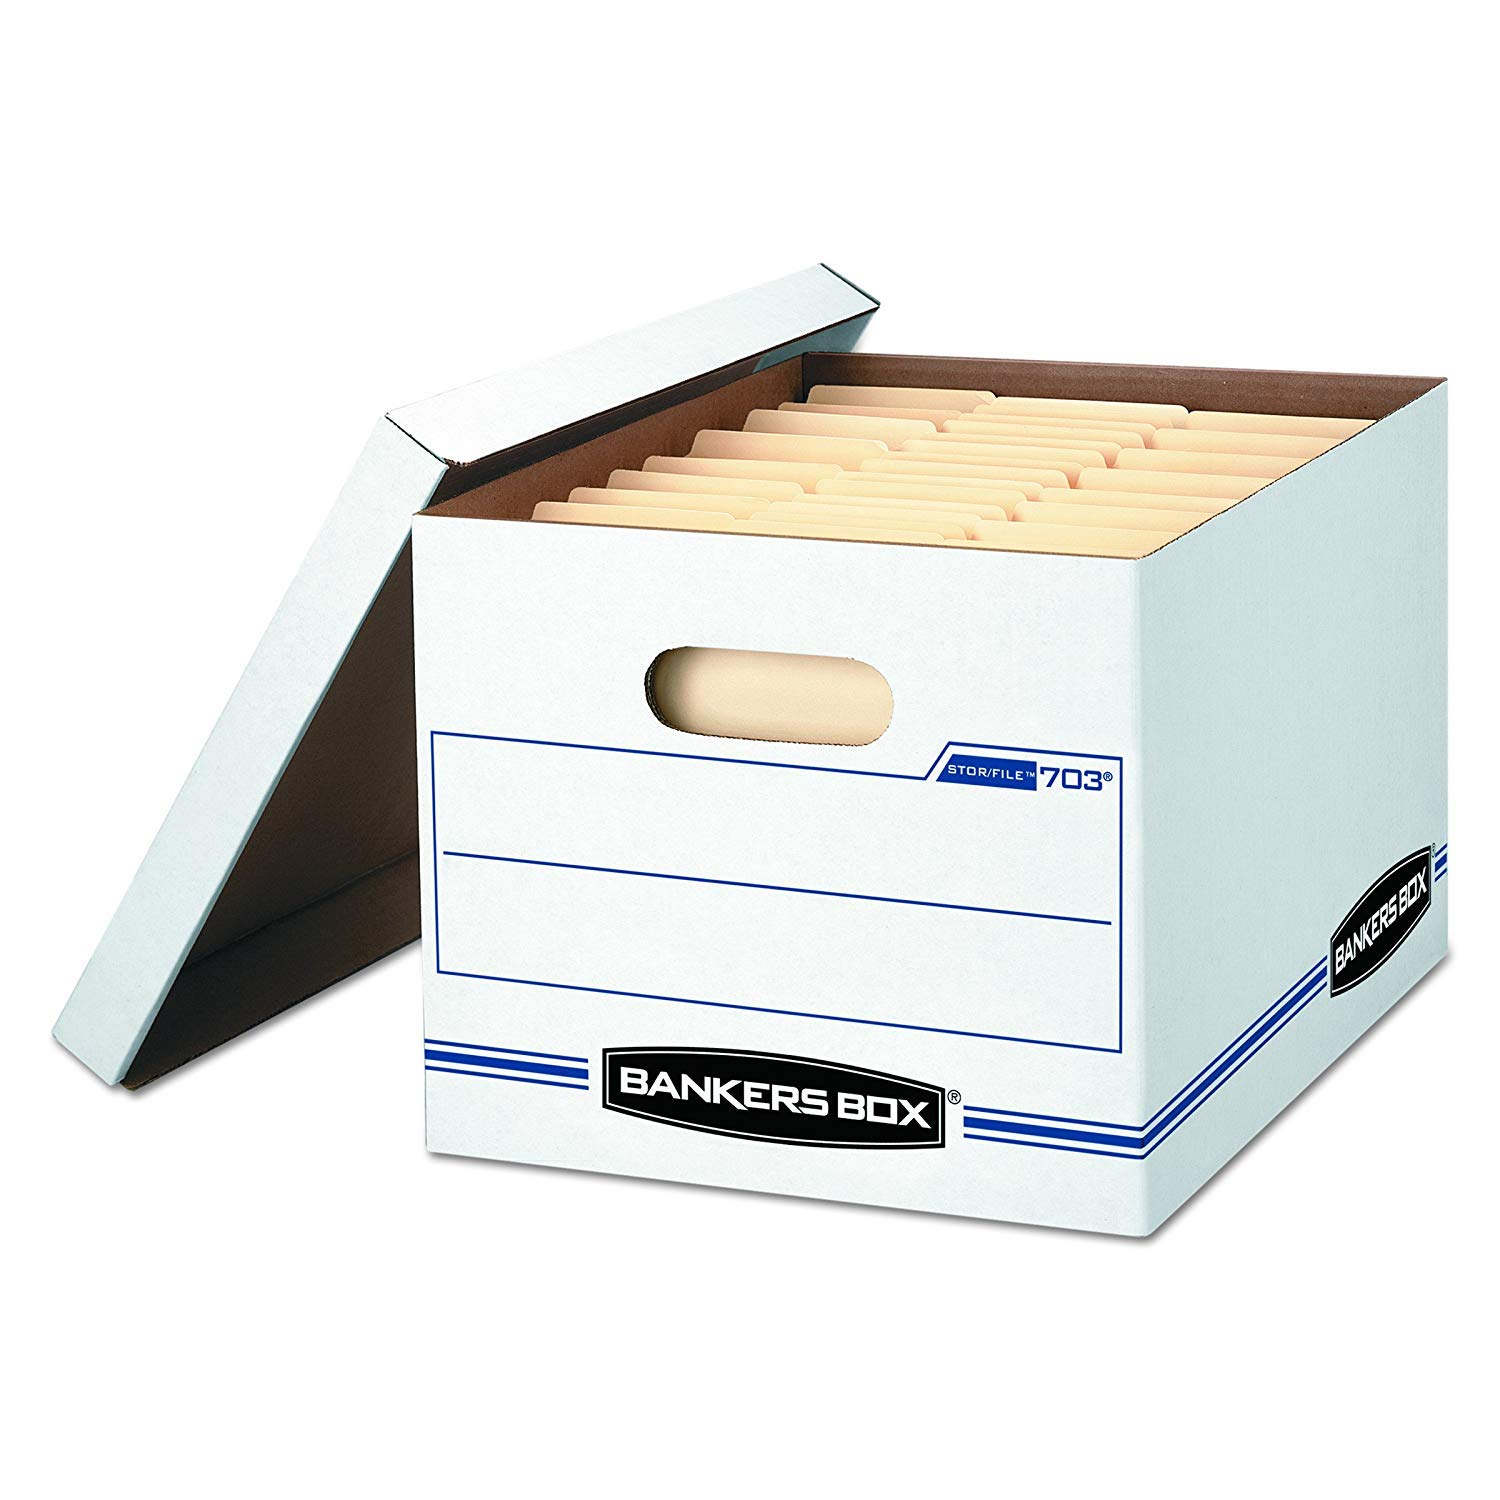 Bankers Box CPUEY STOR/File Storage Boxes, Standard Set-Up, Lift-Off Lid, Letter/Legal, Case of 24 (00703)